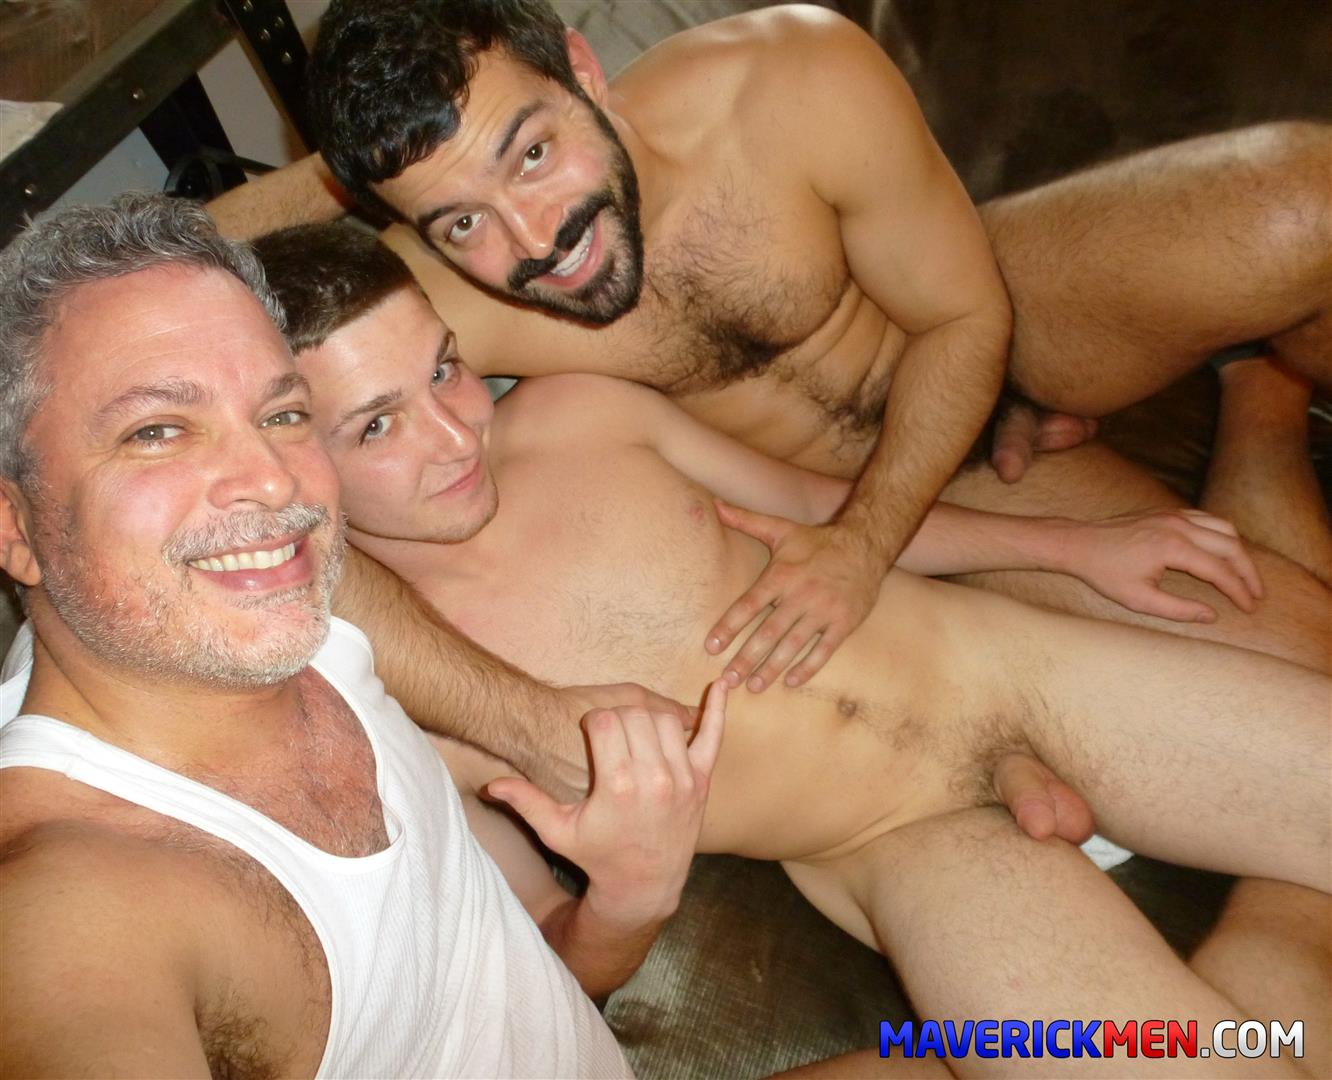 The-Maverick-Men-Tom-Hairy-Twink-Getting-Fucked-By-Two-Muscle-Daddies-Bareback-BBBH-Amateur-Gay-Porn-17 Straight Hairy Twink Gets Fucked By Two Muscle Daddies